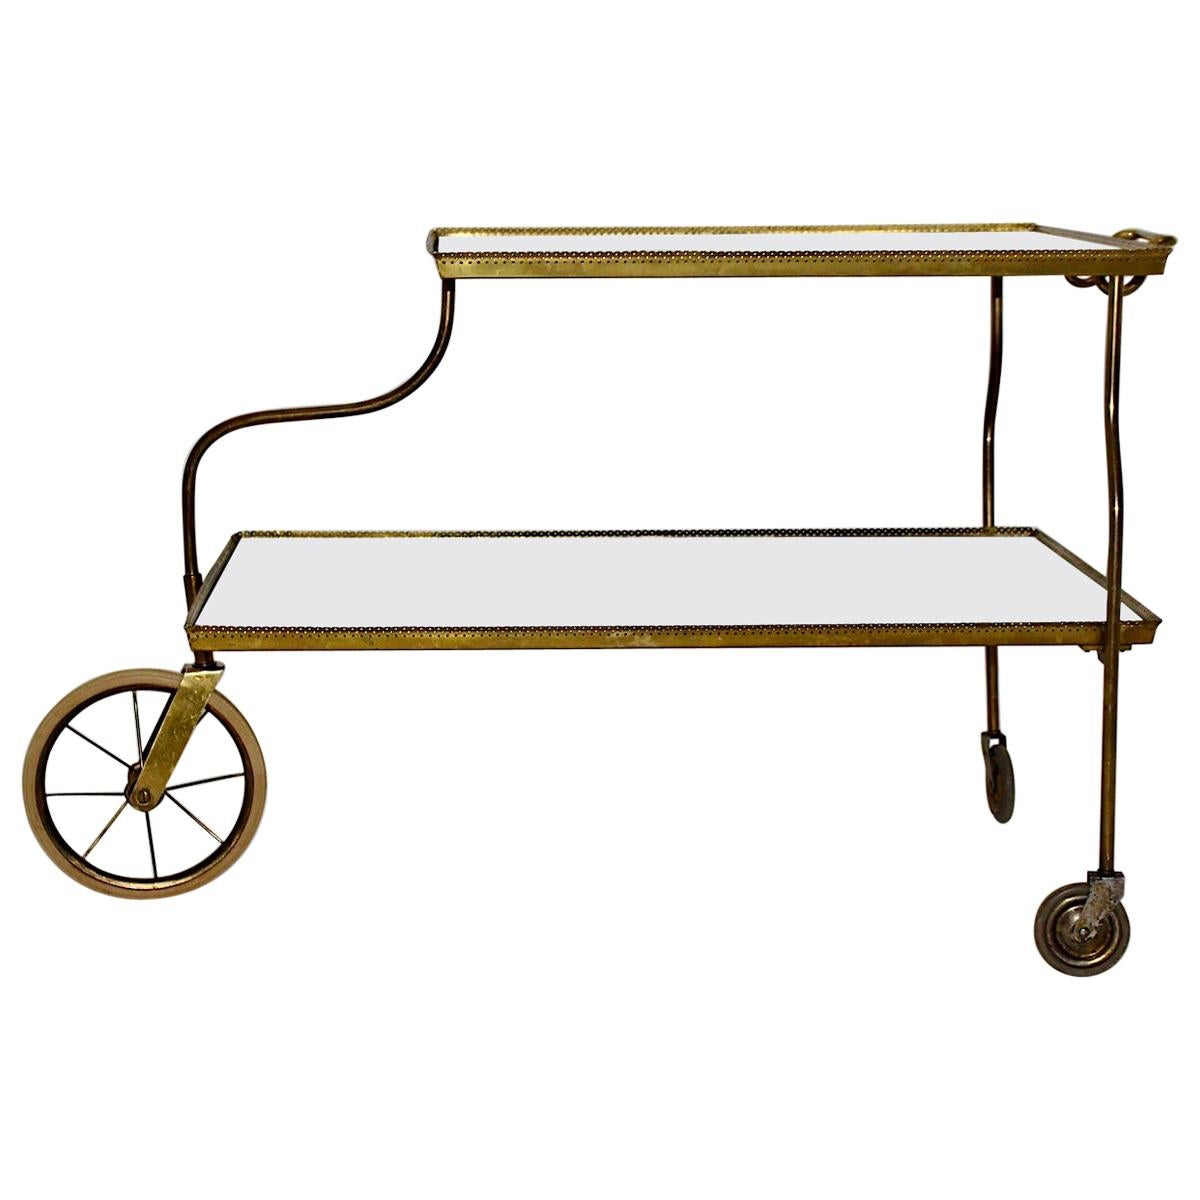 Brass Vintage Bar Cart by Josef Frank for Svenskt Tenn, circa 1938, Sweden